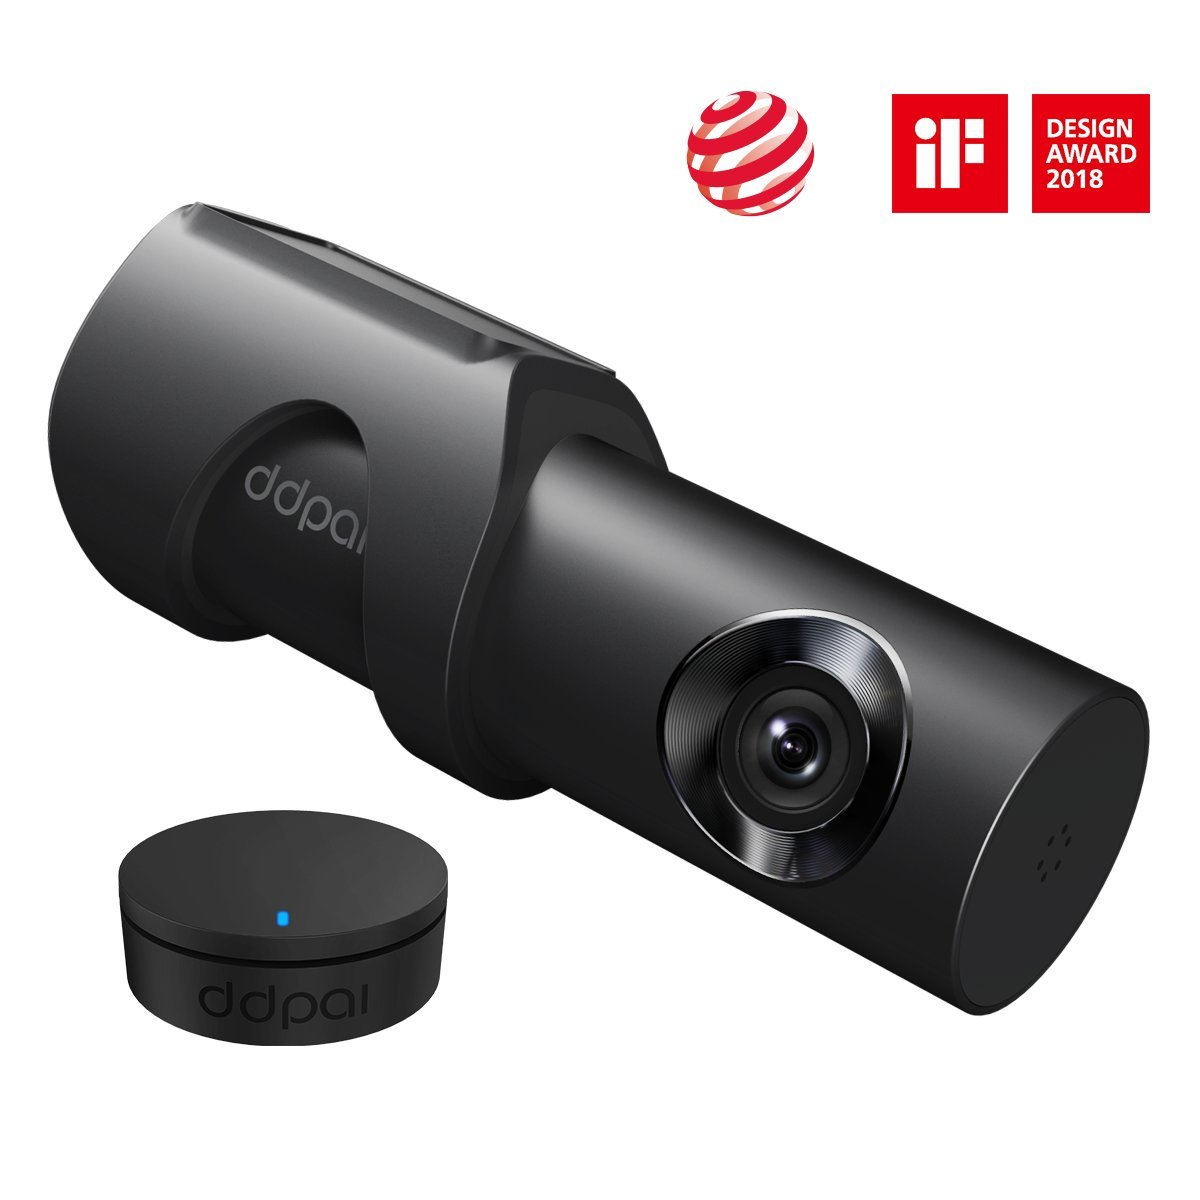 1600P Dash Cam, DDPai Mini3 Built-in Wifi and 32G eMMC Storage Card Car Camera, F1.8 Aperture 140 Wide Angle with WDR HD Night Vision, Loop Recording, G-Sensor